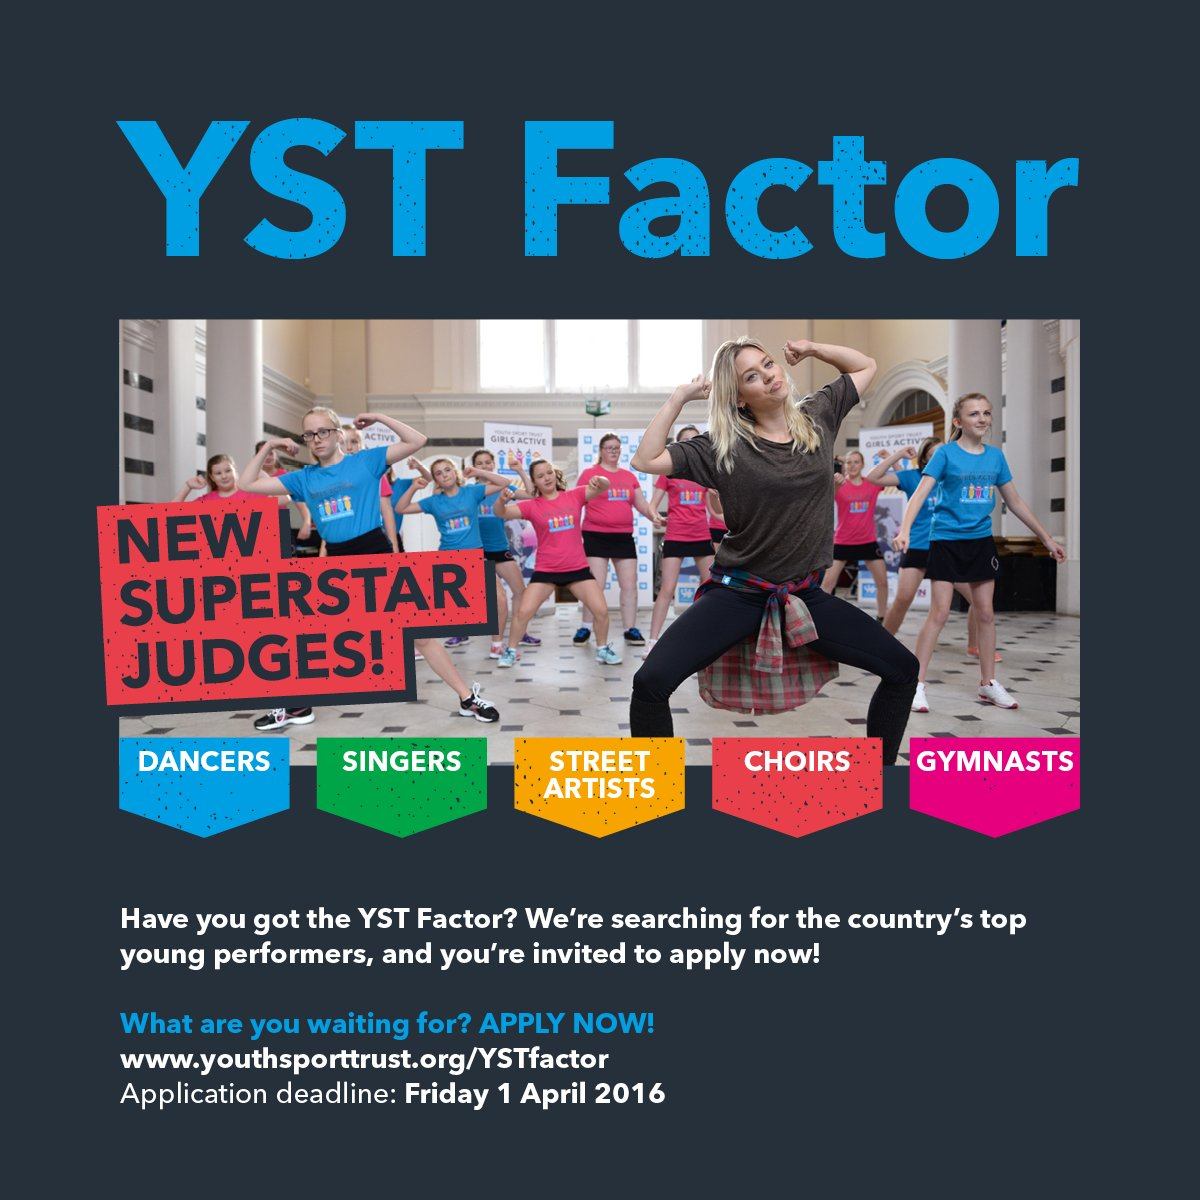 RT @YouthSportTrust: Know a talented young person? This is their big opportunity - #YSTFactor is back: https://t.co/N7ZTYw4721 https://t.co…